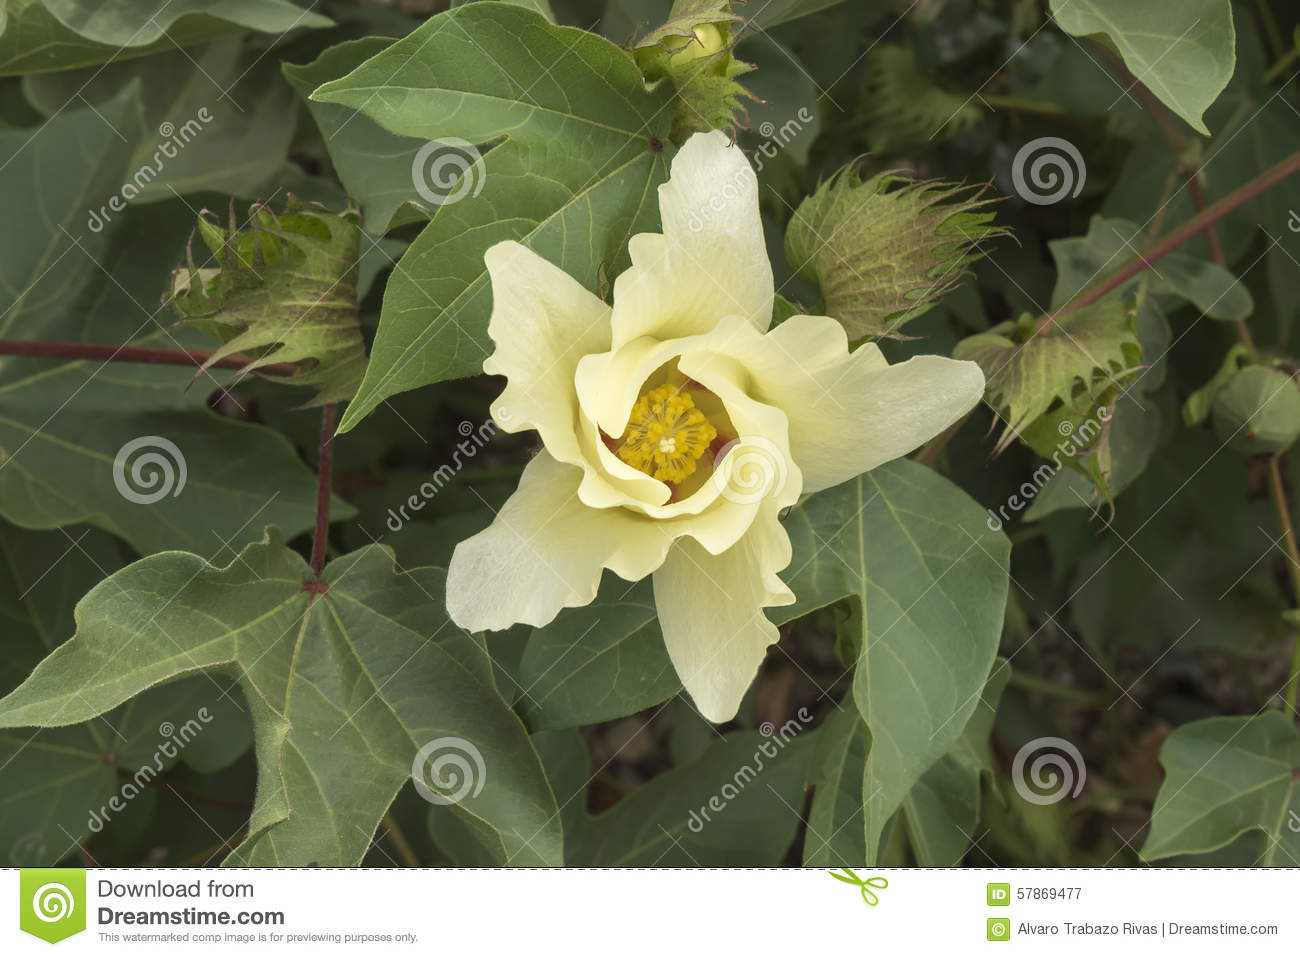 Pianta Del Cotone Immagini Bud Of Plant Royalty Free Stock Photo Cartoondealer